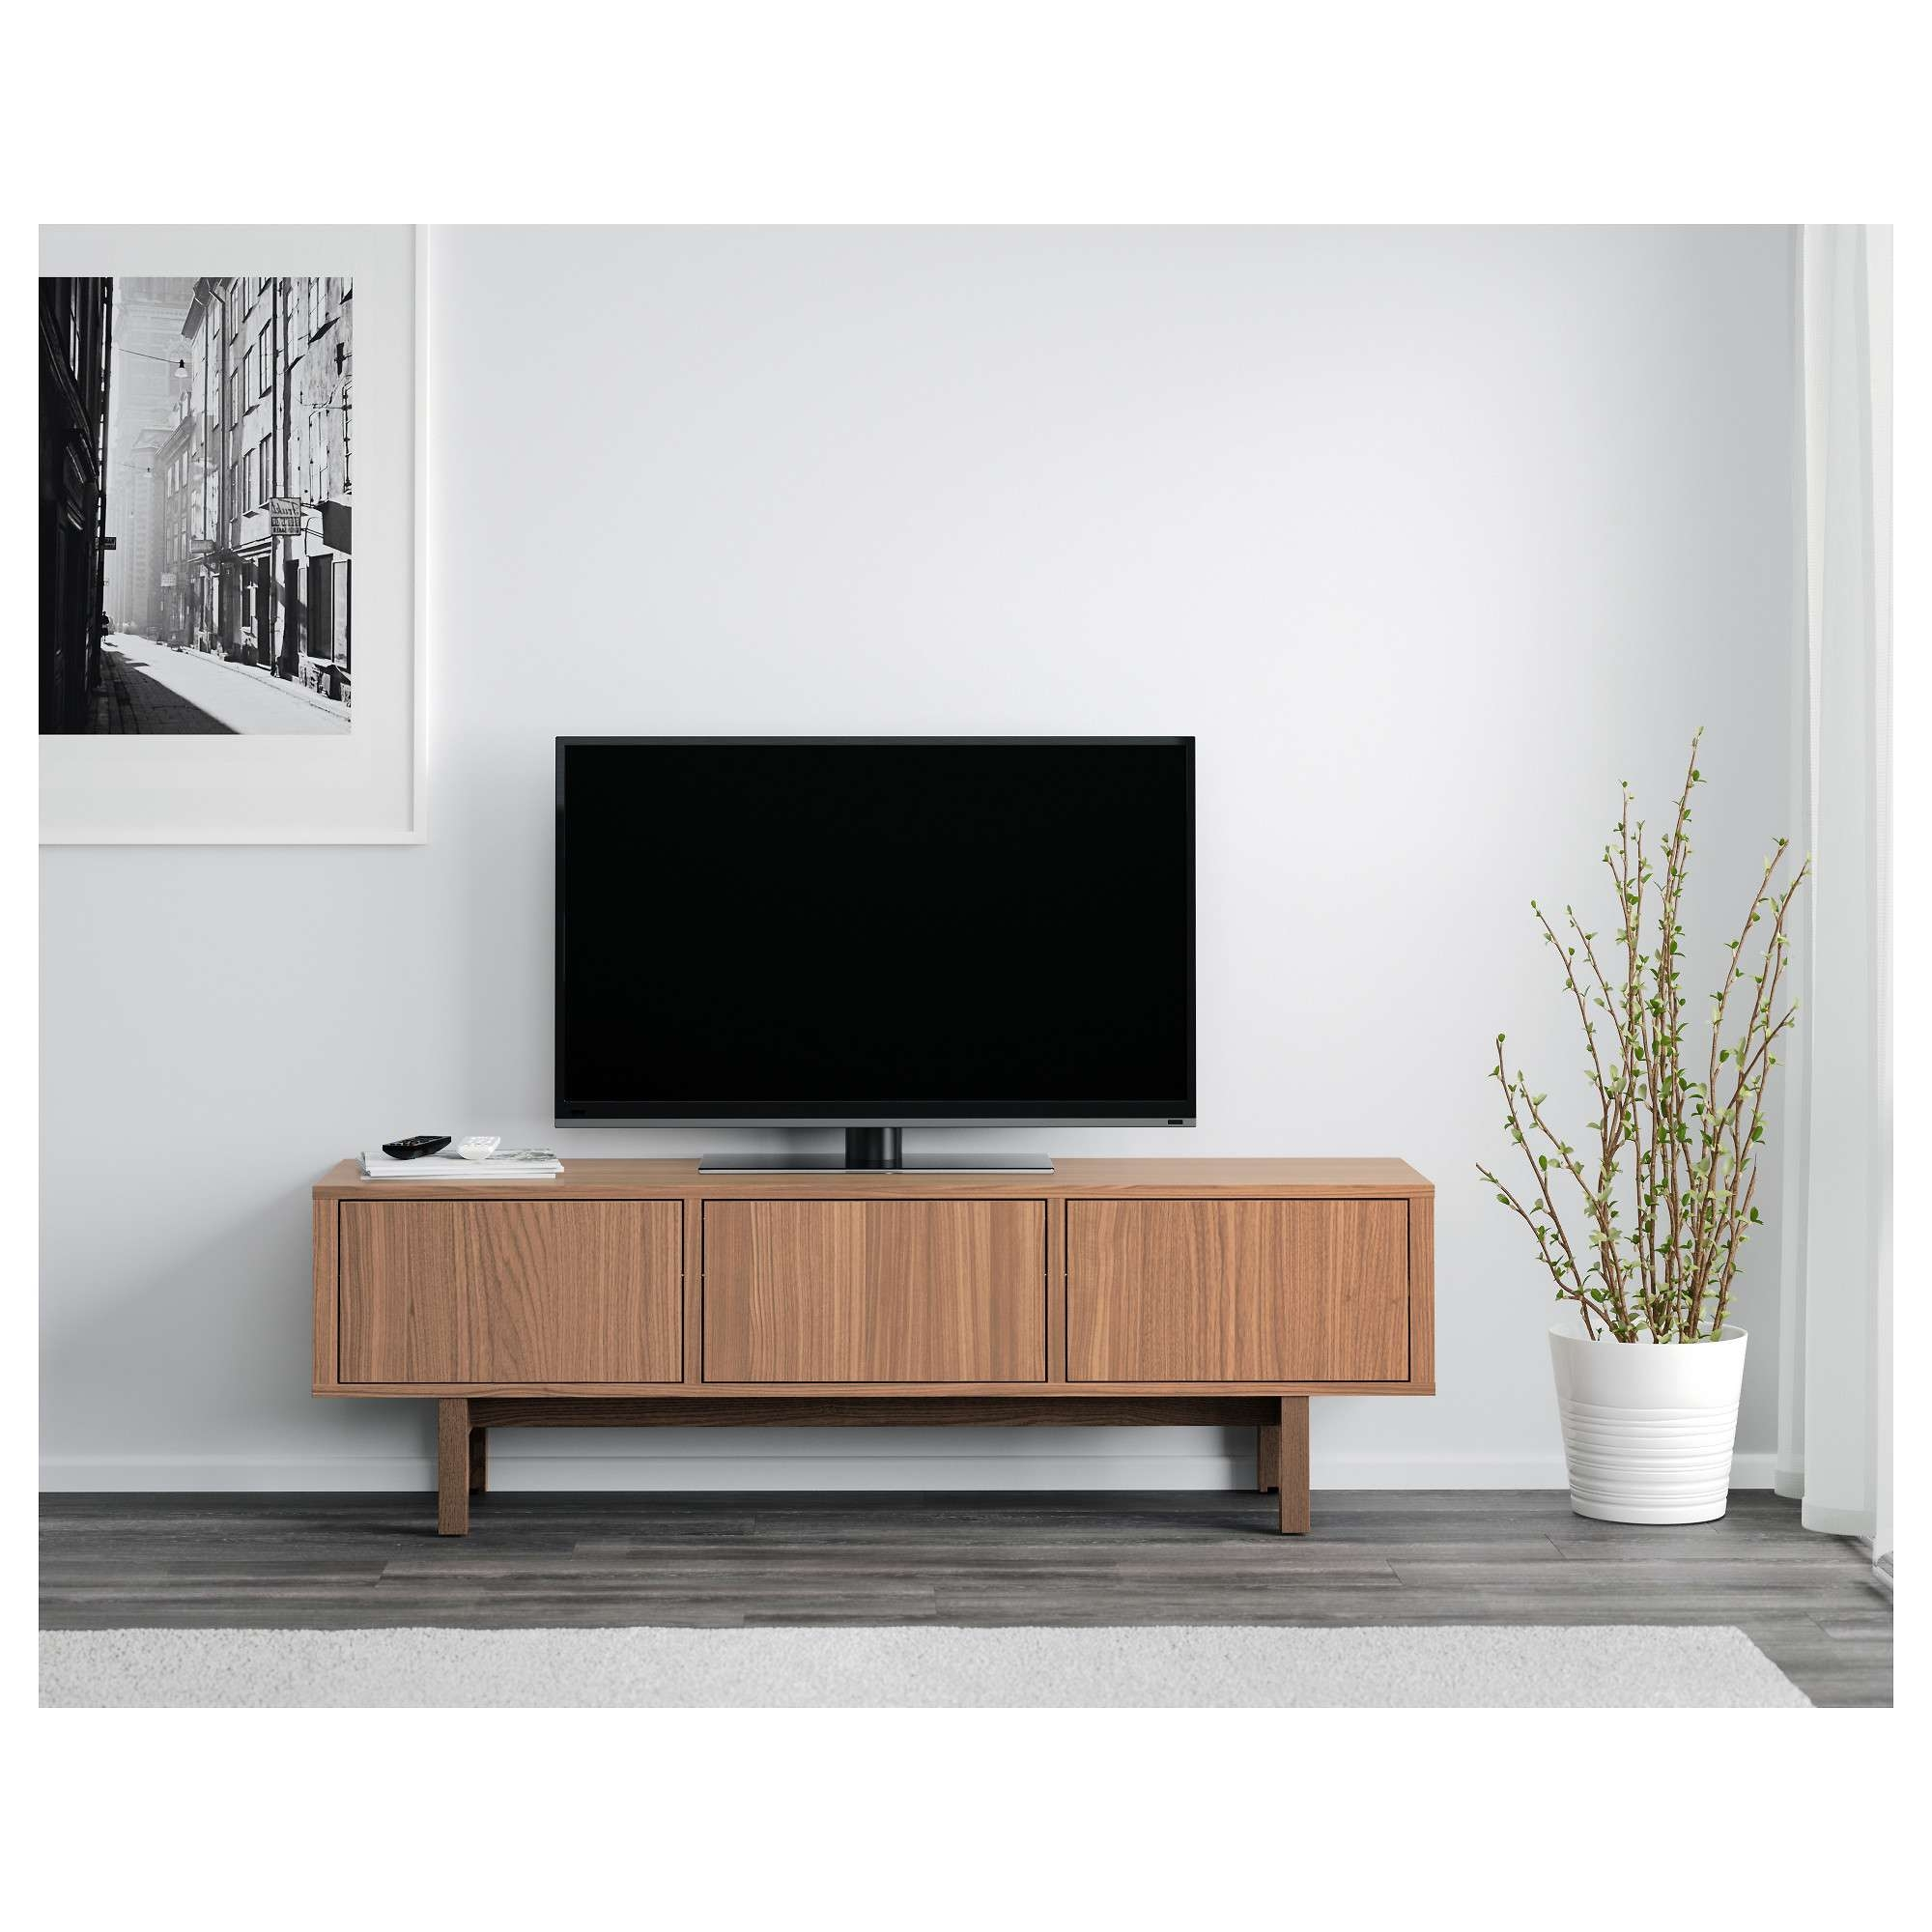 Stockholm Tv Bench Walnut Veneer 160x40 Cm – Ikea With Ikea Stockholm Sideboards (View 12 of 20)